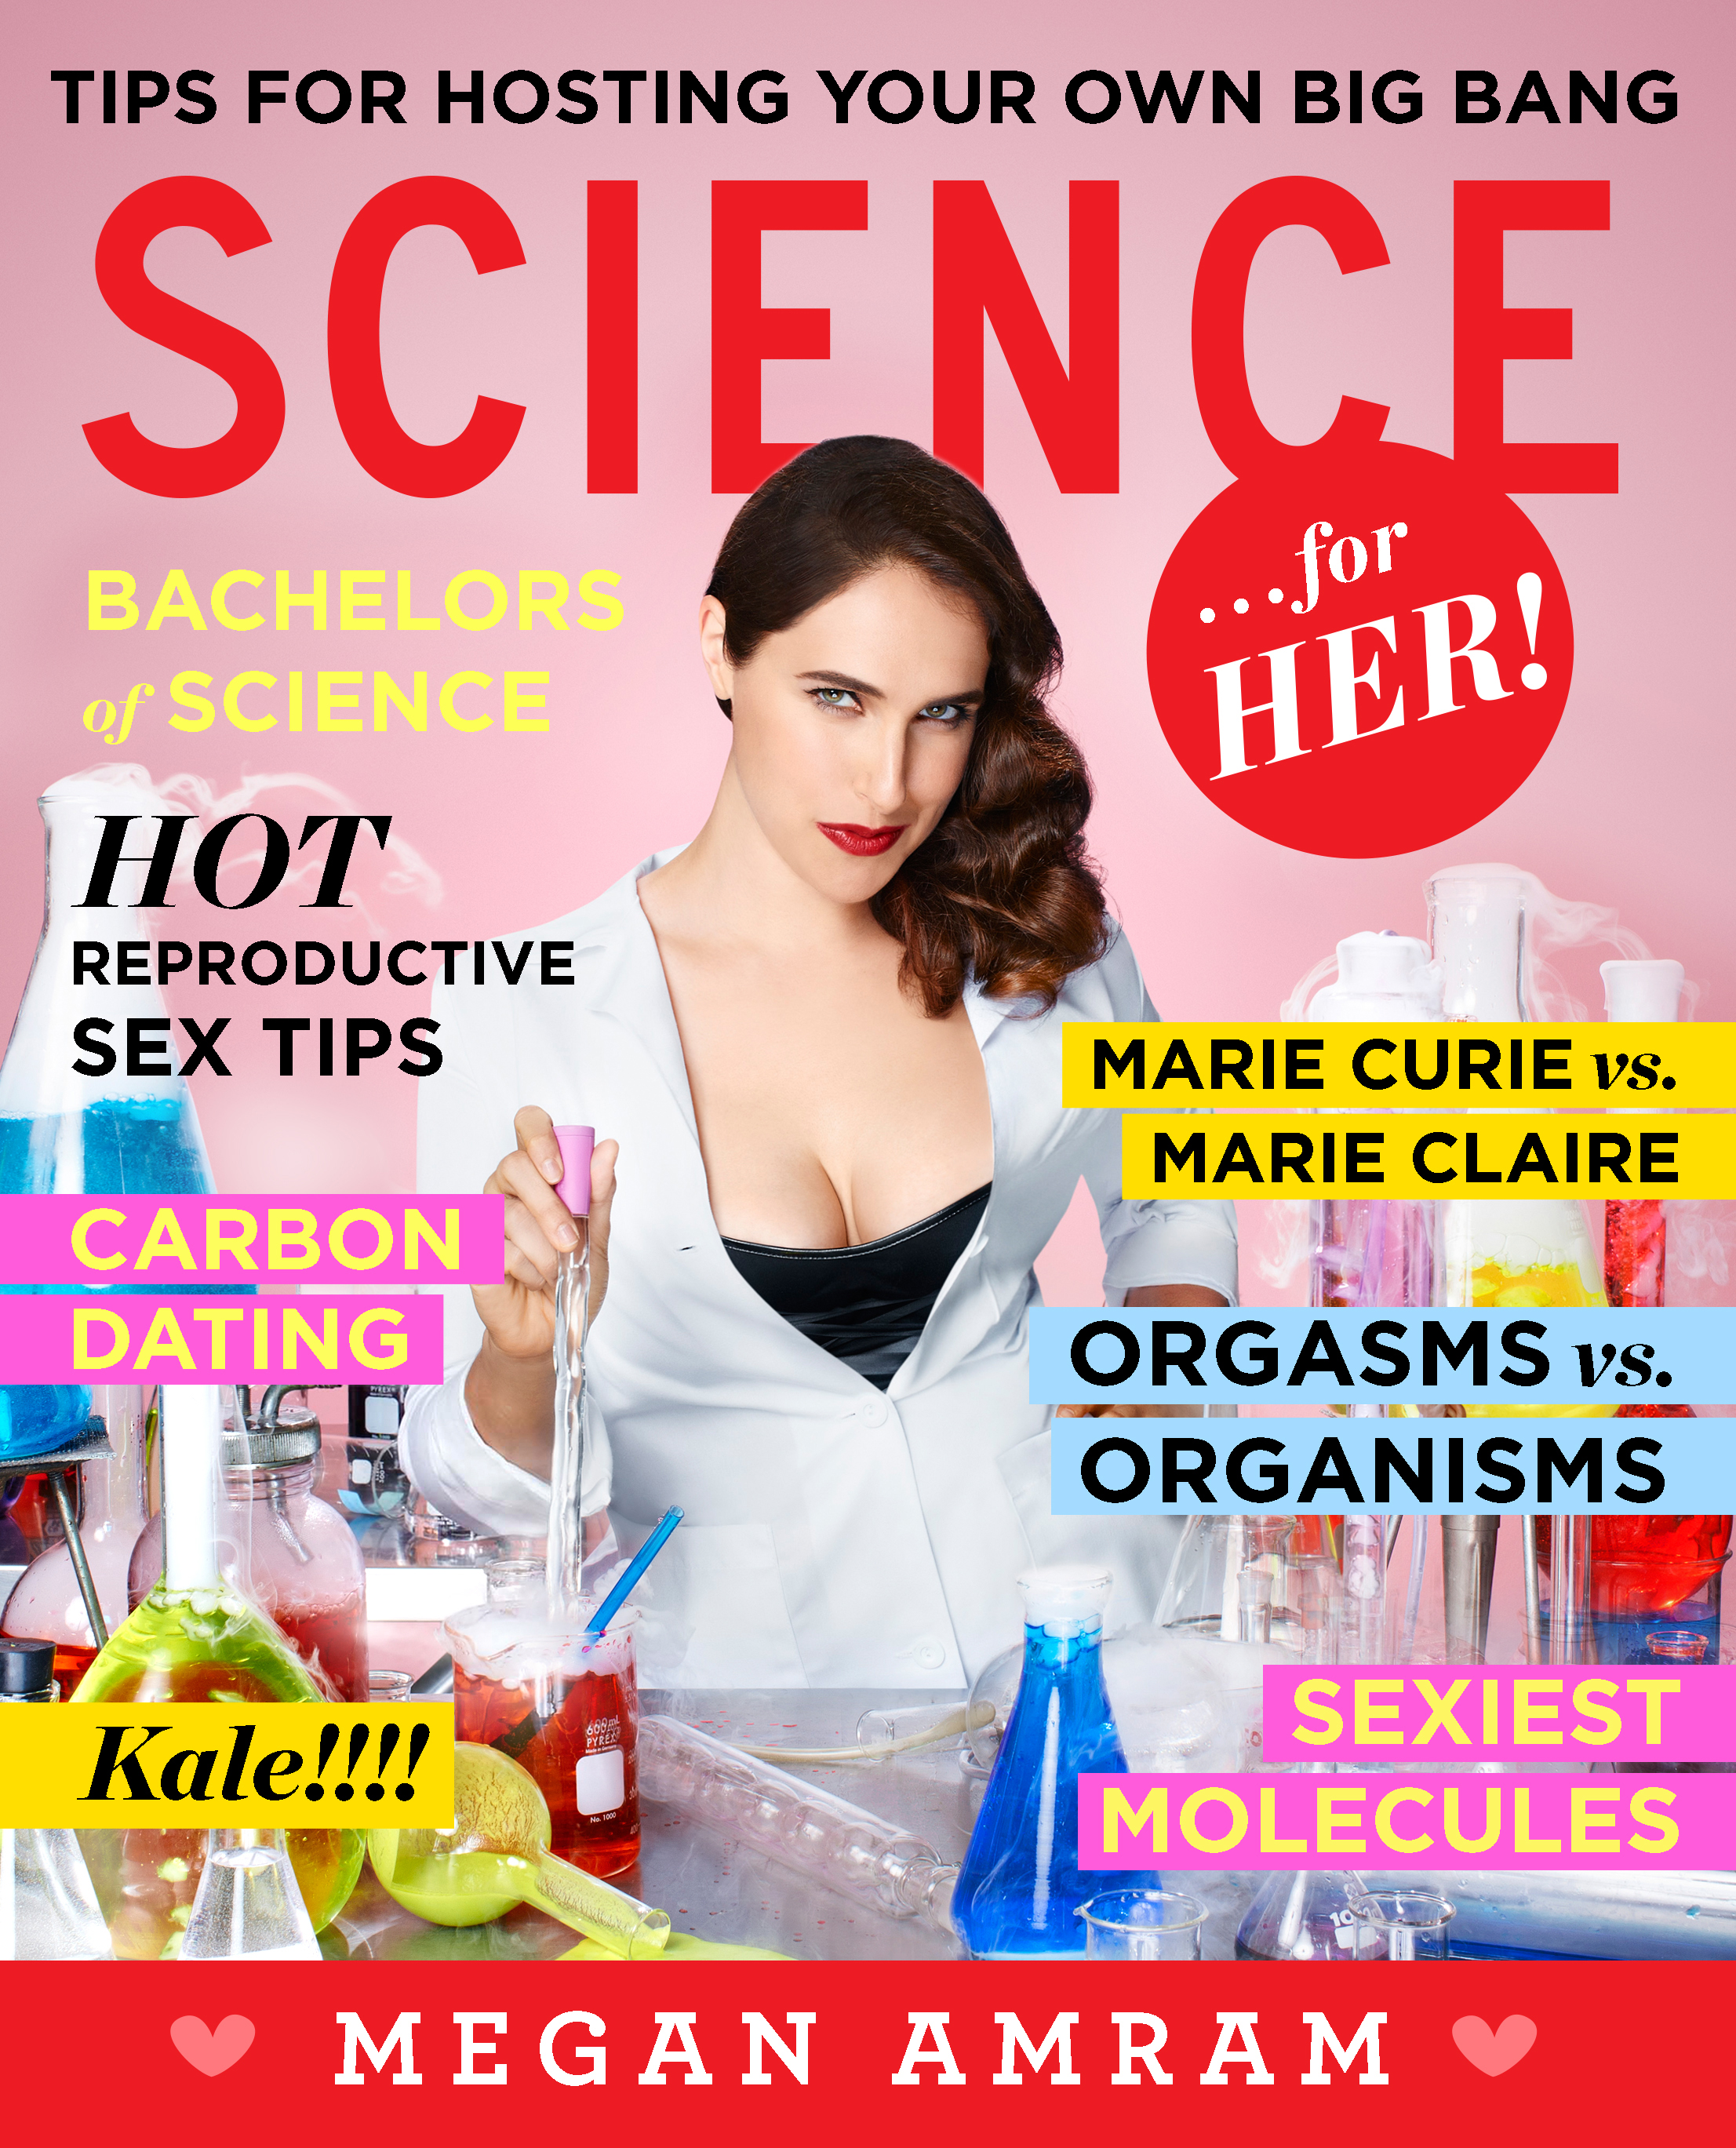 Book Launch: Science...for Her! by Megan Amram, with John Hodgman